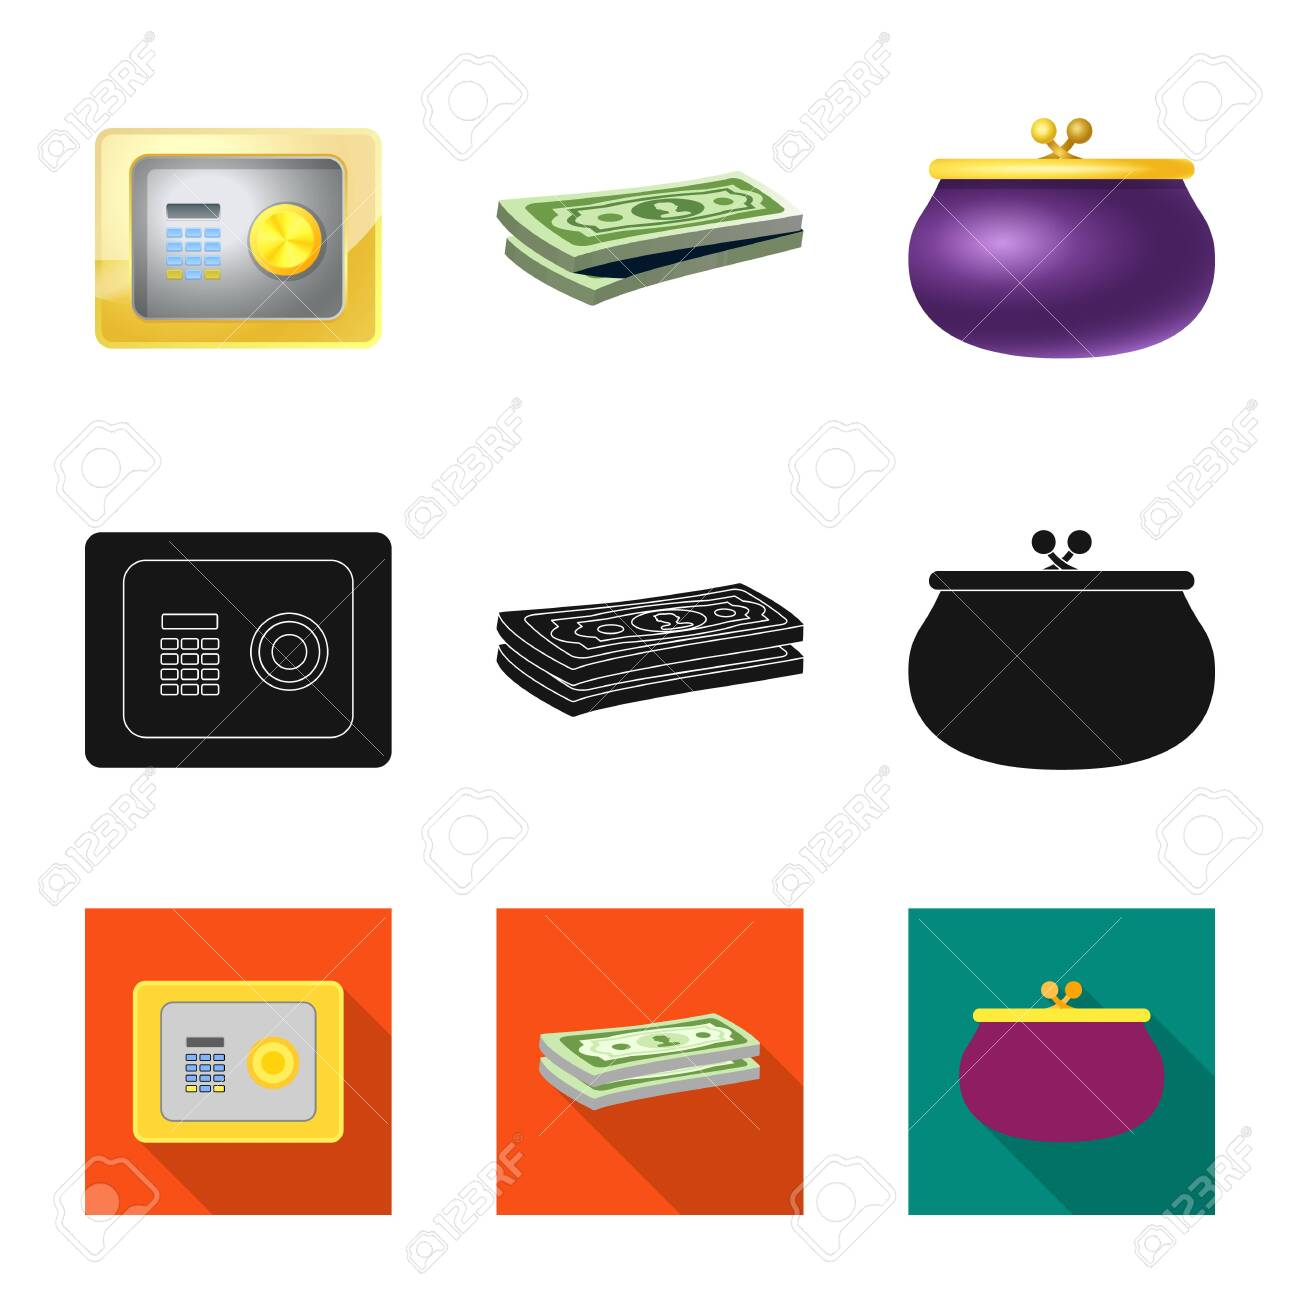 Design On Stock Bank.Bitmap Design Of Bank And Money Logo Collection Of Bank And